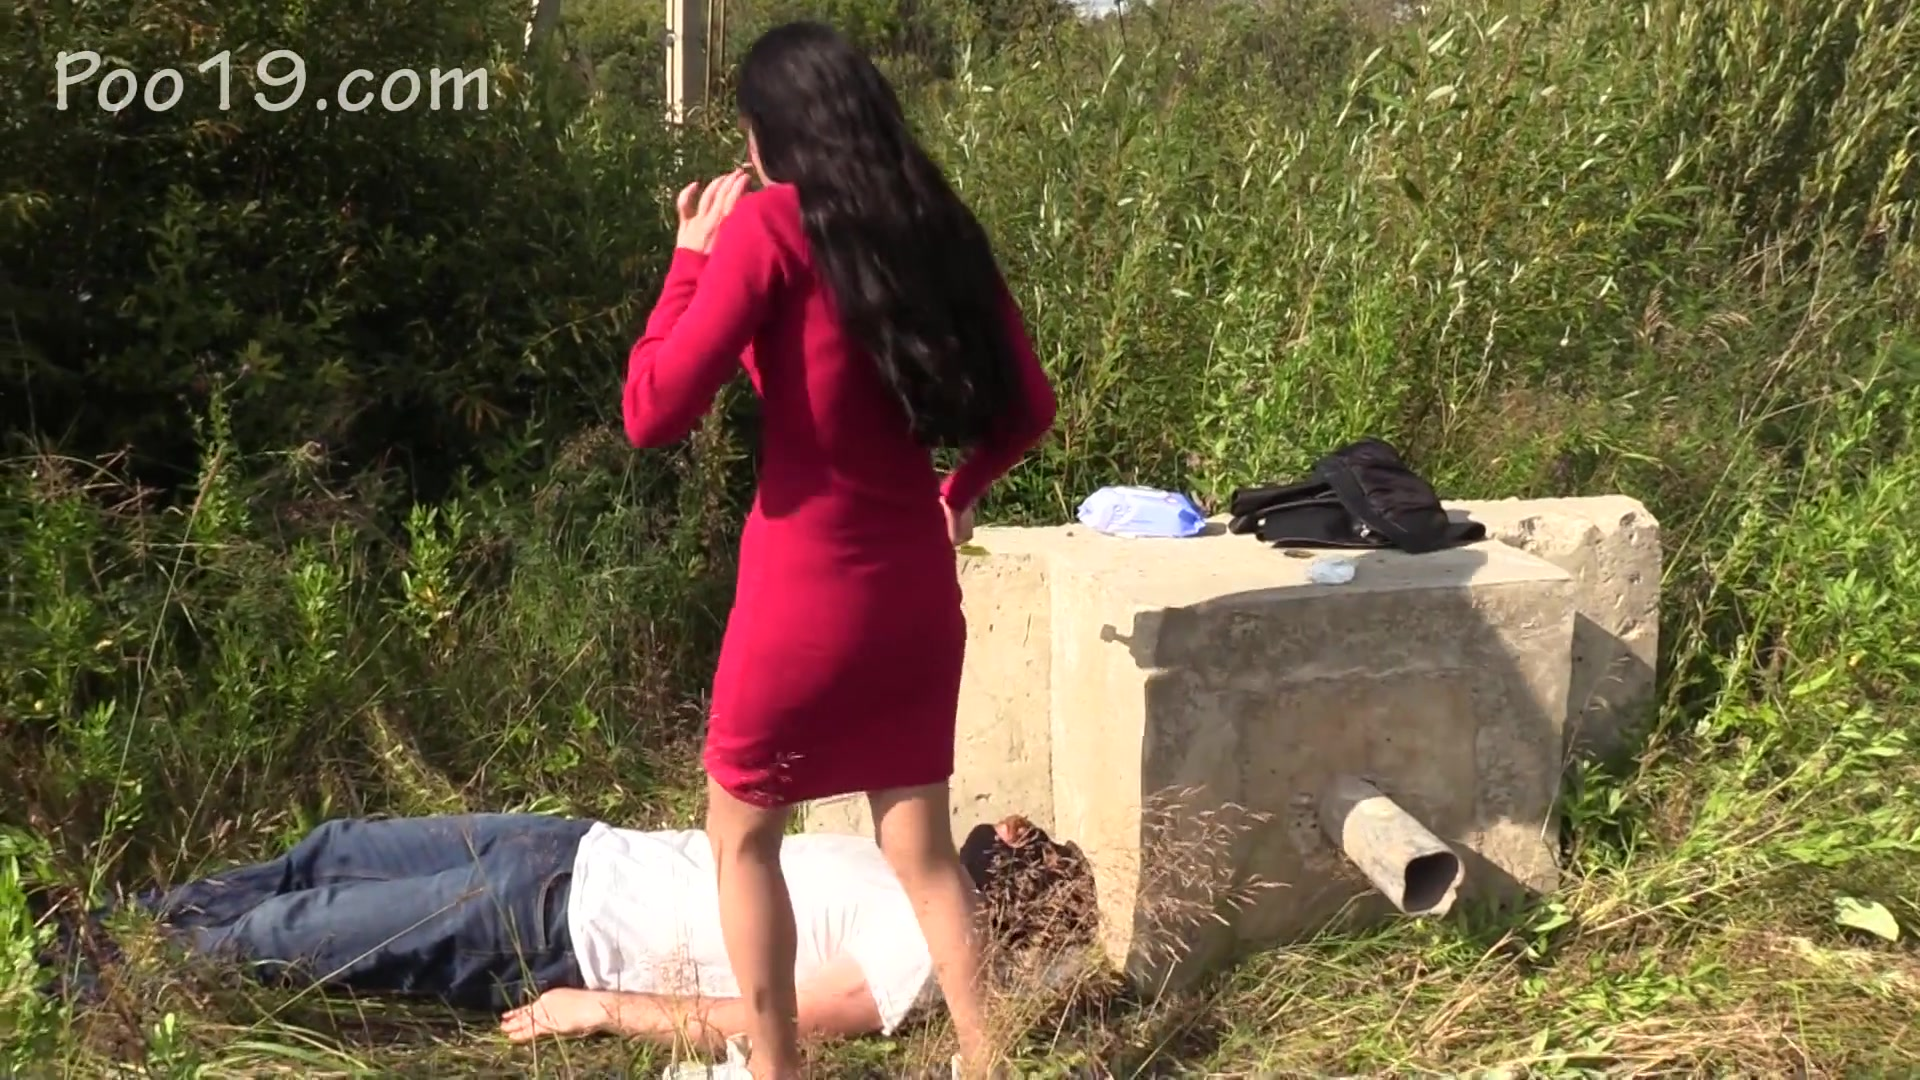 New_Toilet_Slave_Mark_Spat_On_Mistress.00001.jpg